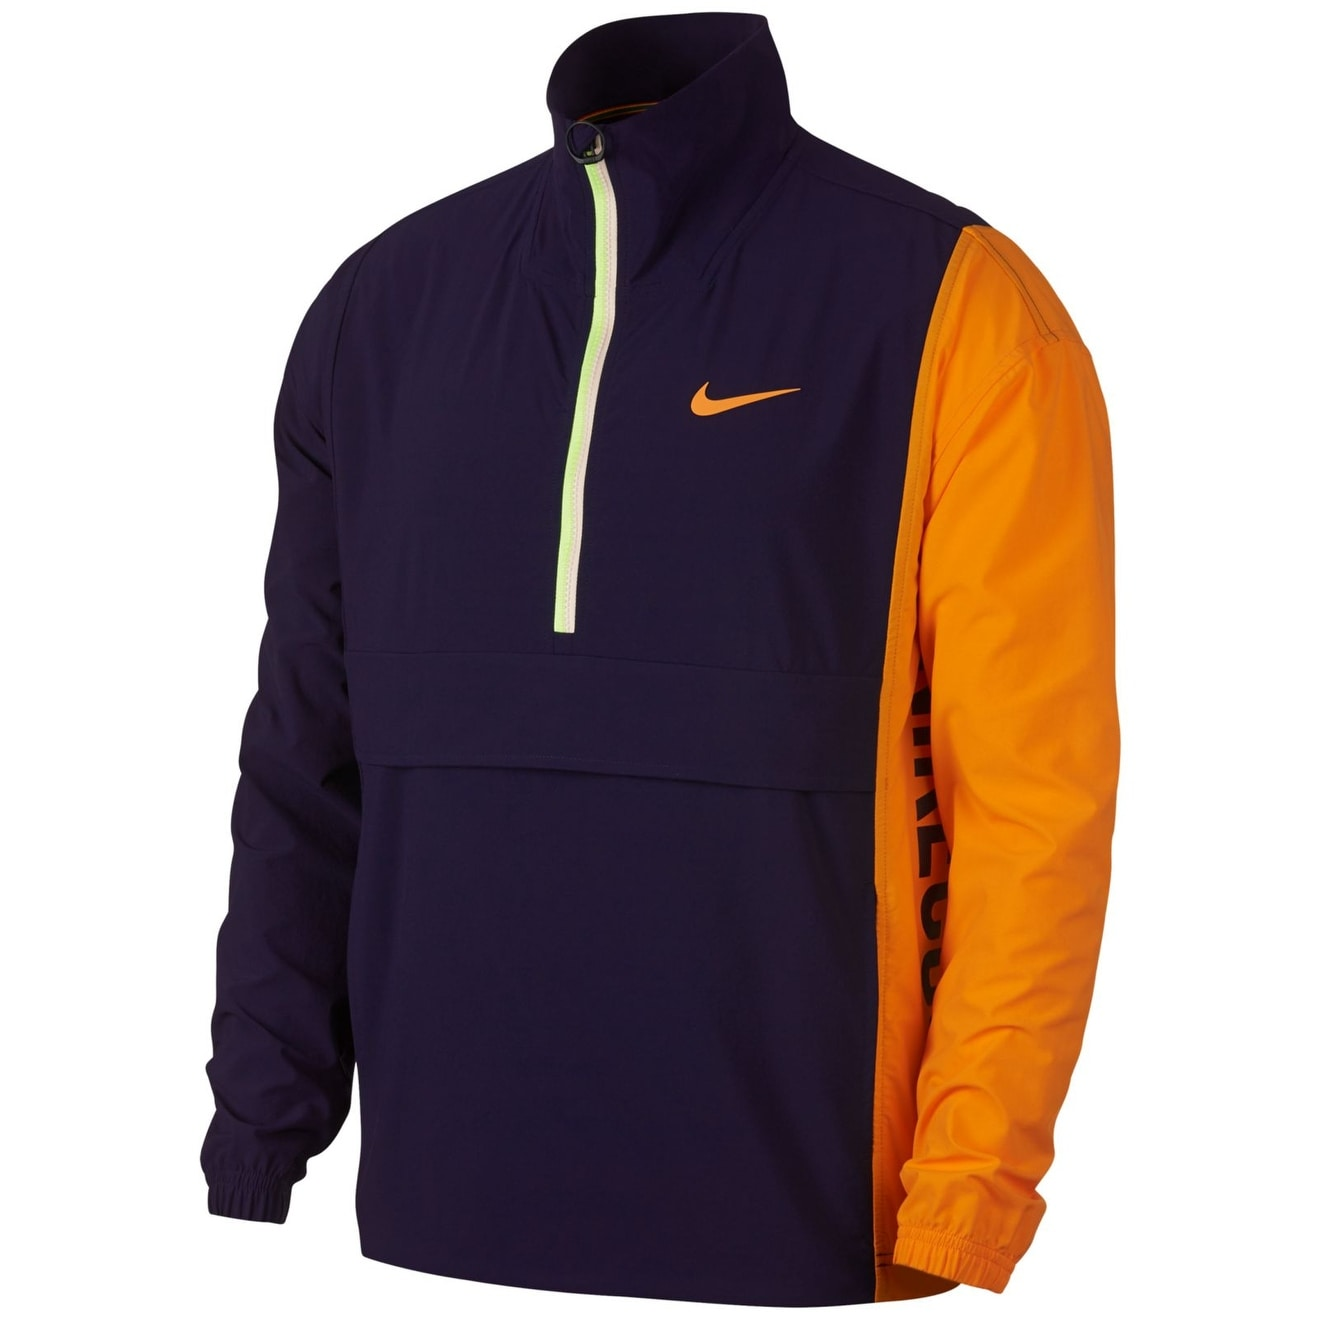 21775ed1e Buy Nike Jackets Online at Overstock | Our Best Men's Outerwear Deals